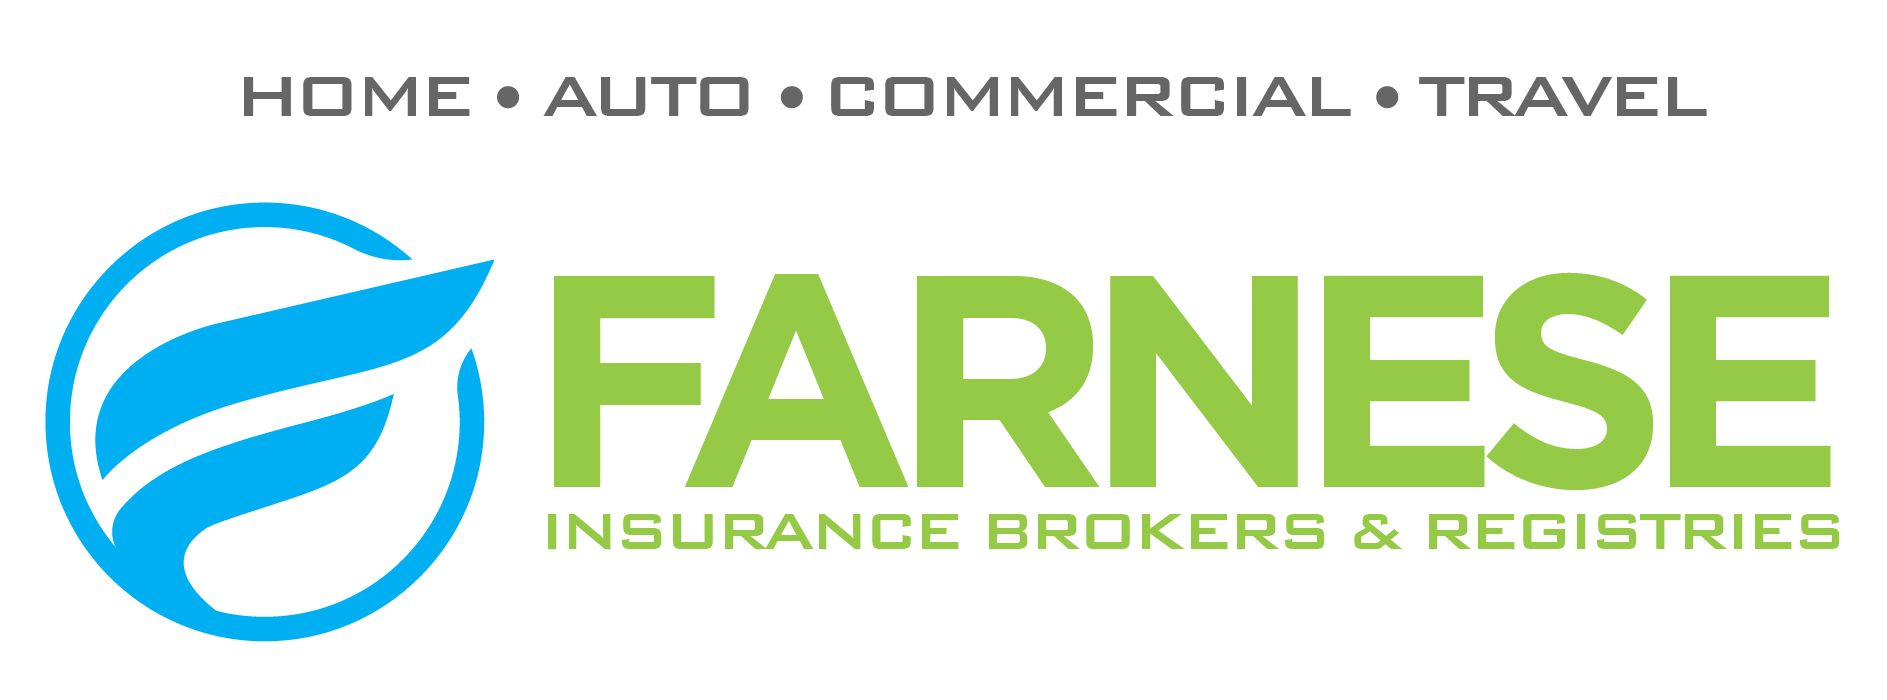 Farnese-Insurance-Brokers-Logo_Logo_white_bg.jpg